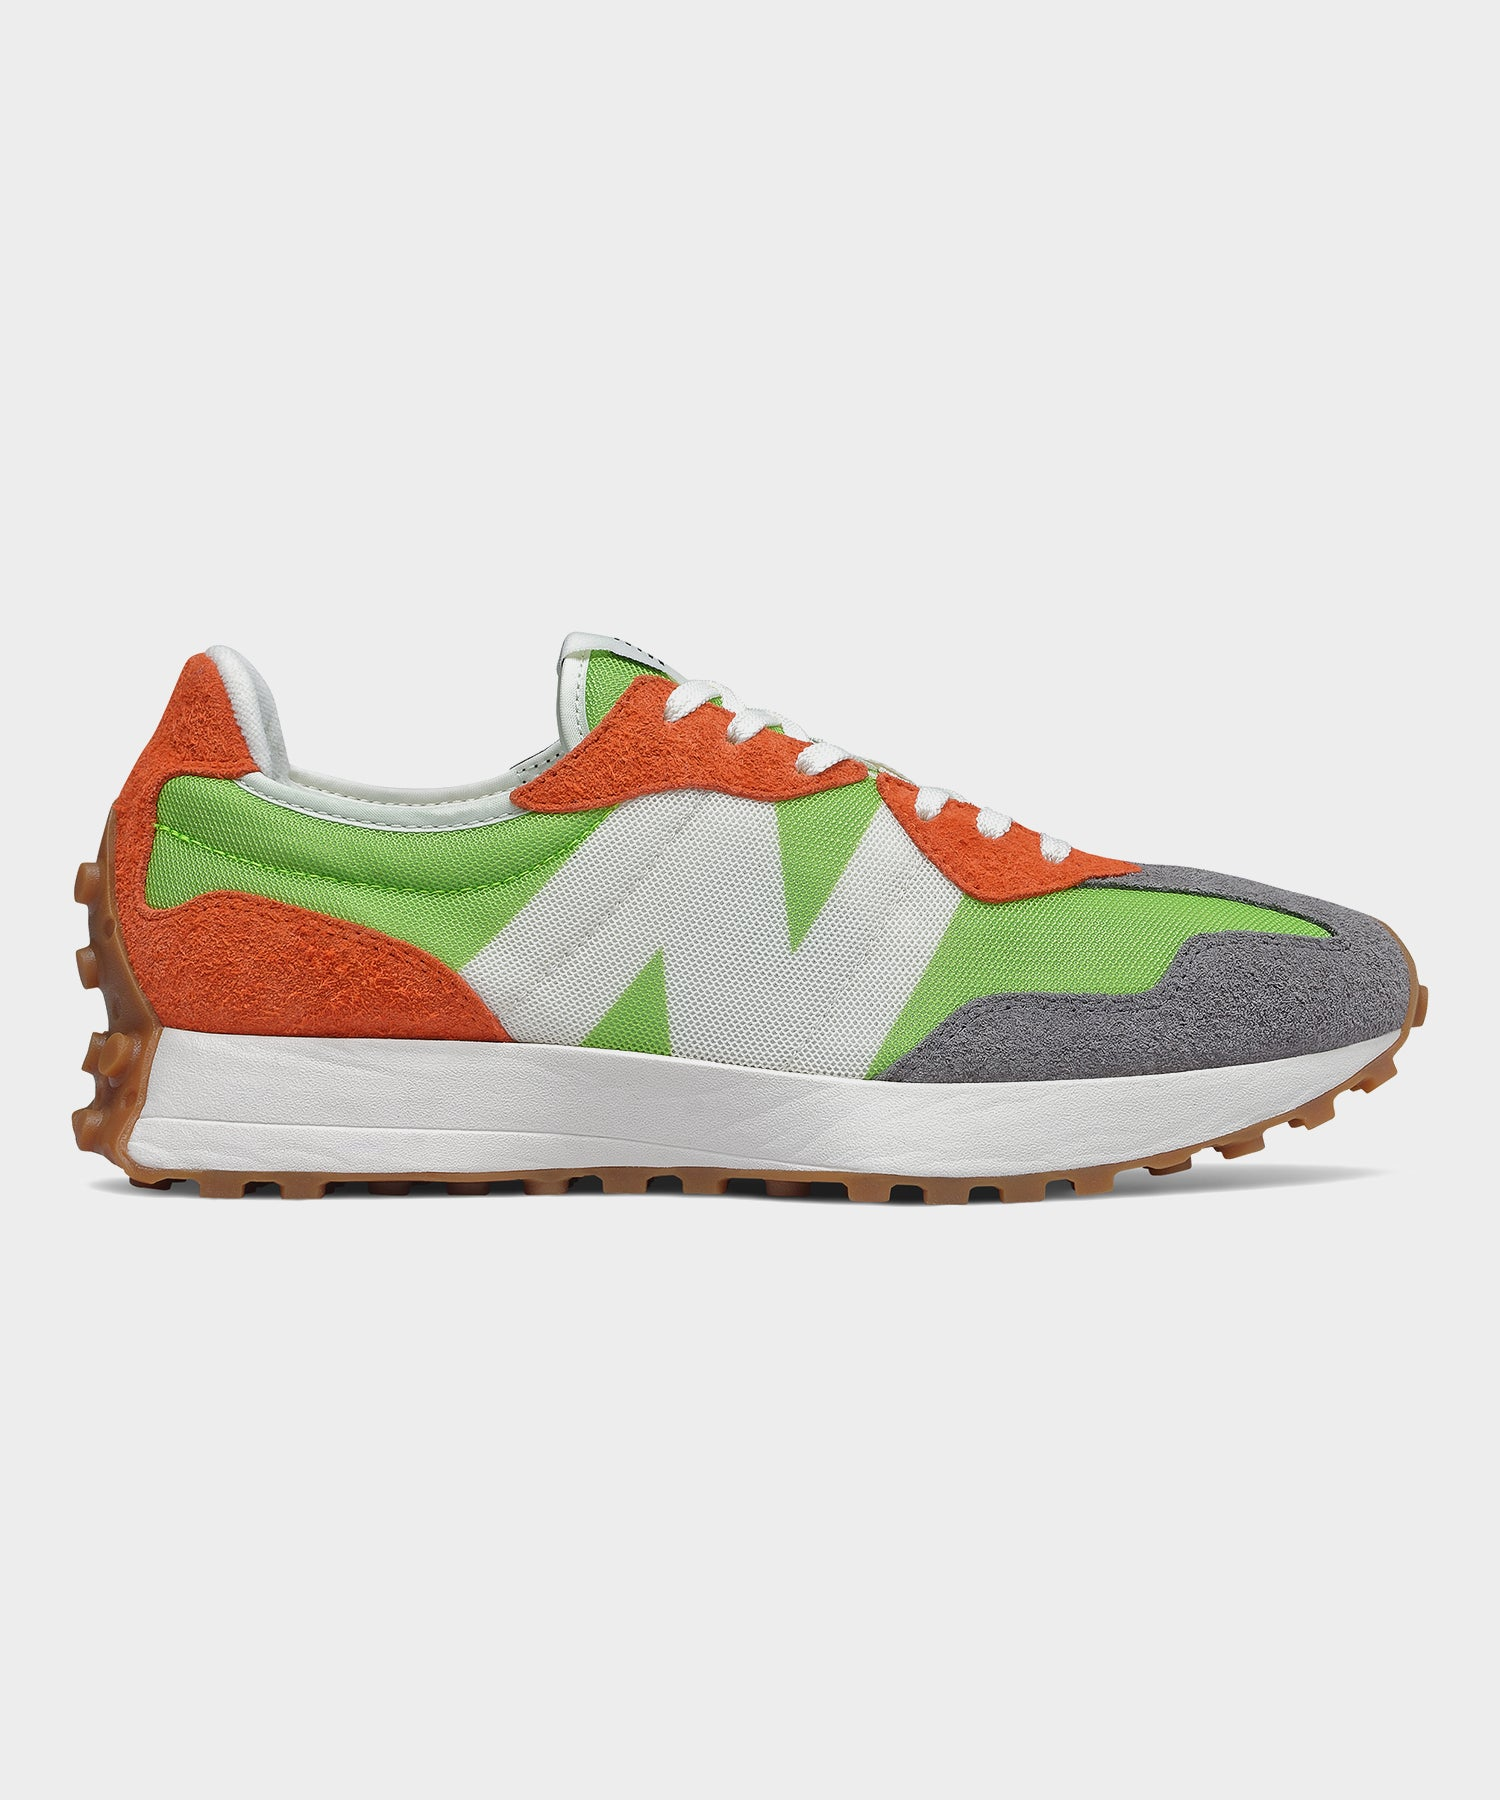 New Balance 327 in Lime